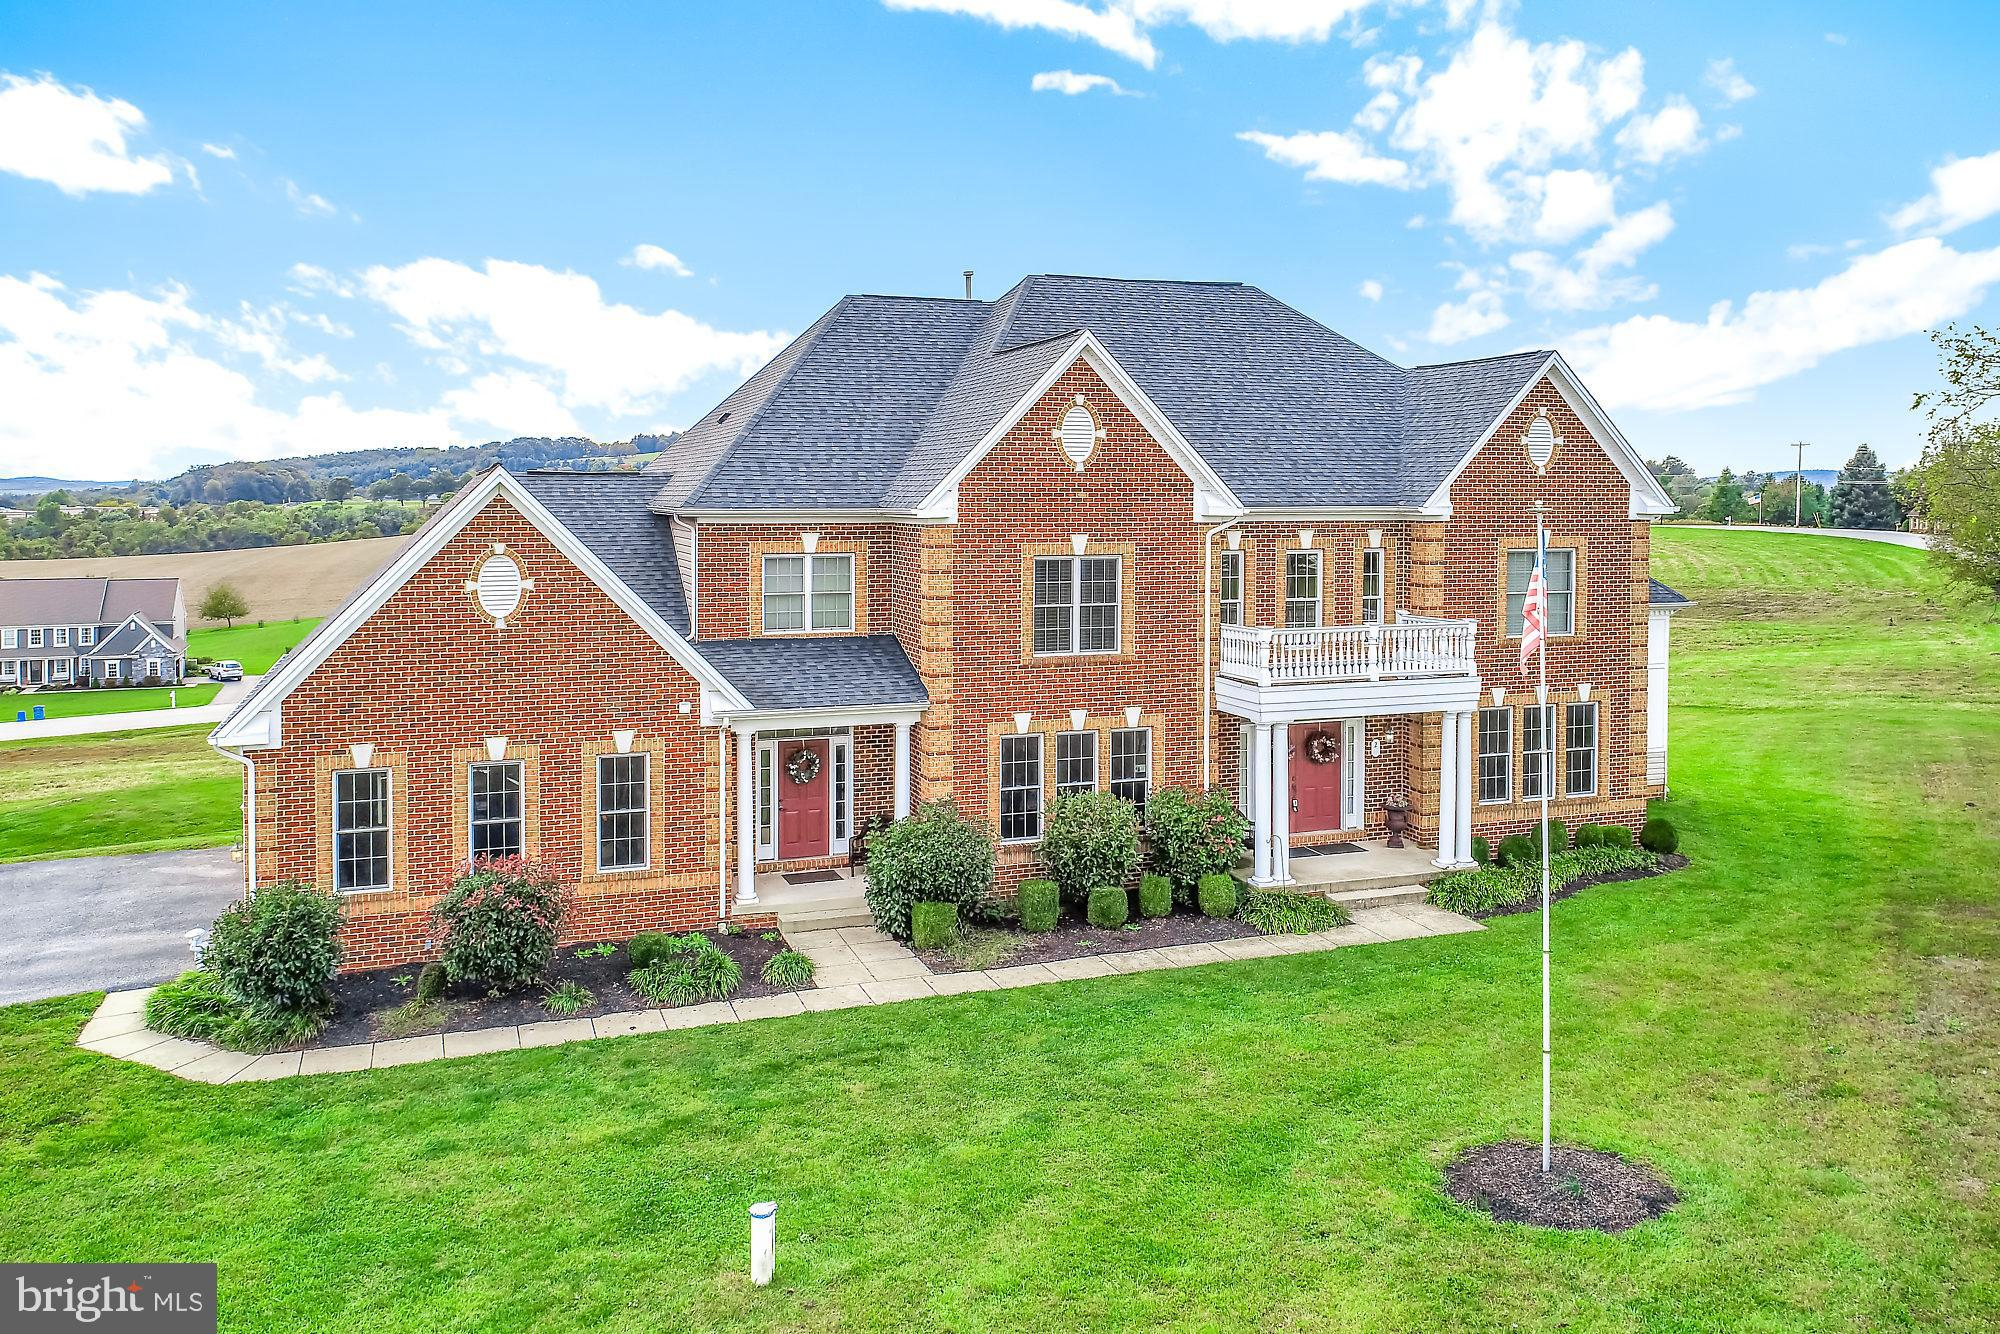 2 CAMELOT LANE, WRIGHTSVILLE, PA 17368